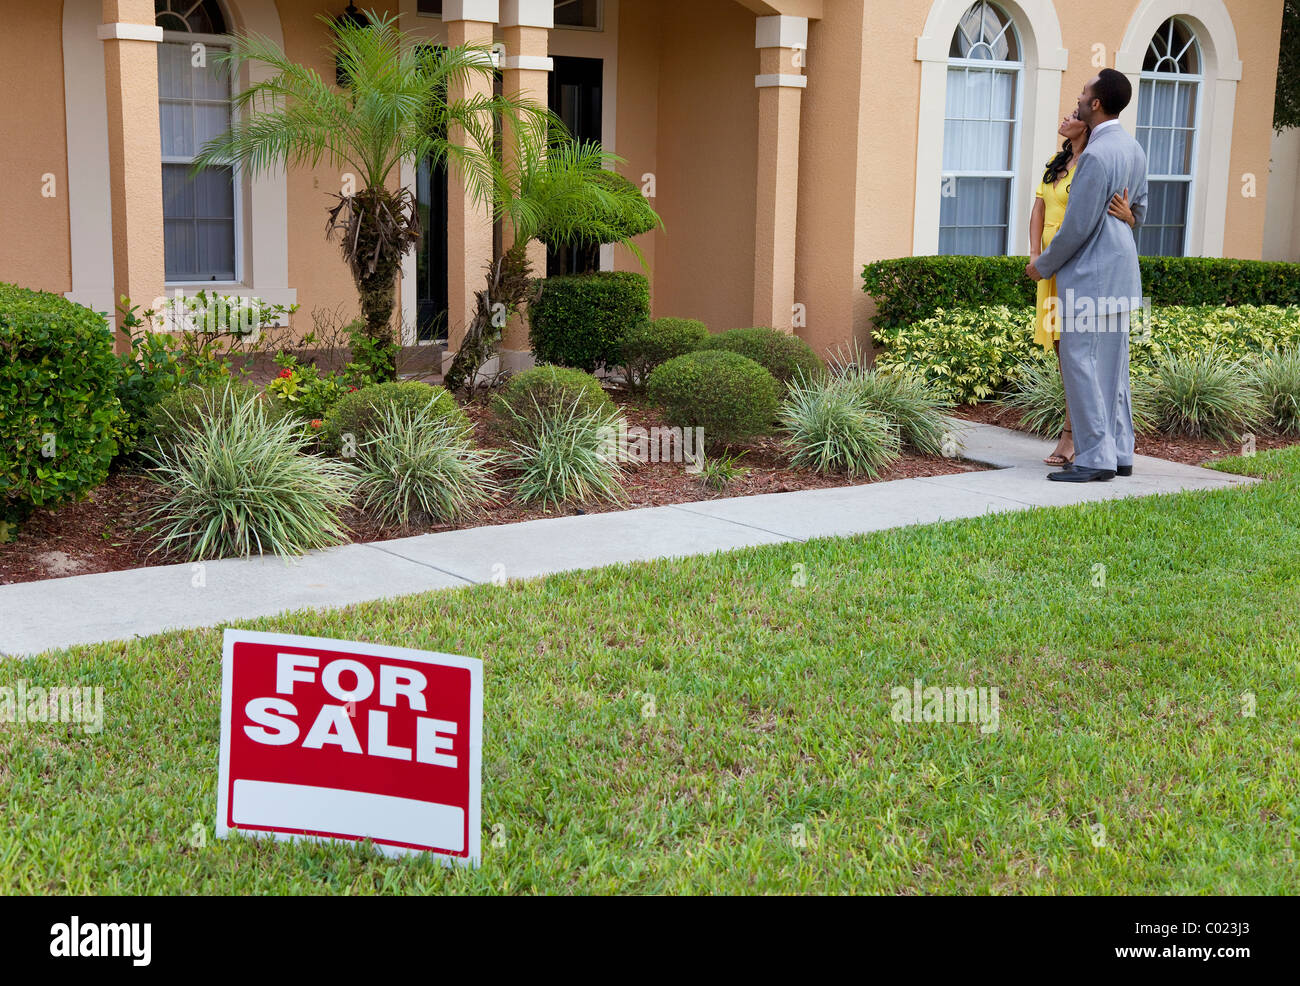 A happy African American man and woman couple house hunting outside a large house with a For Sale sign - Stock Image